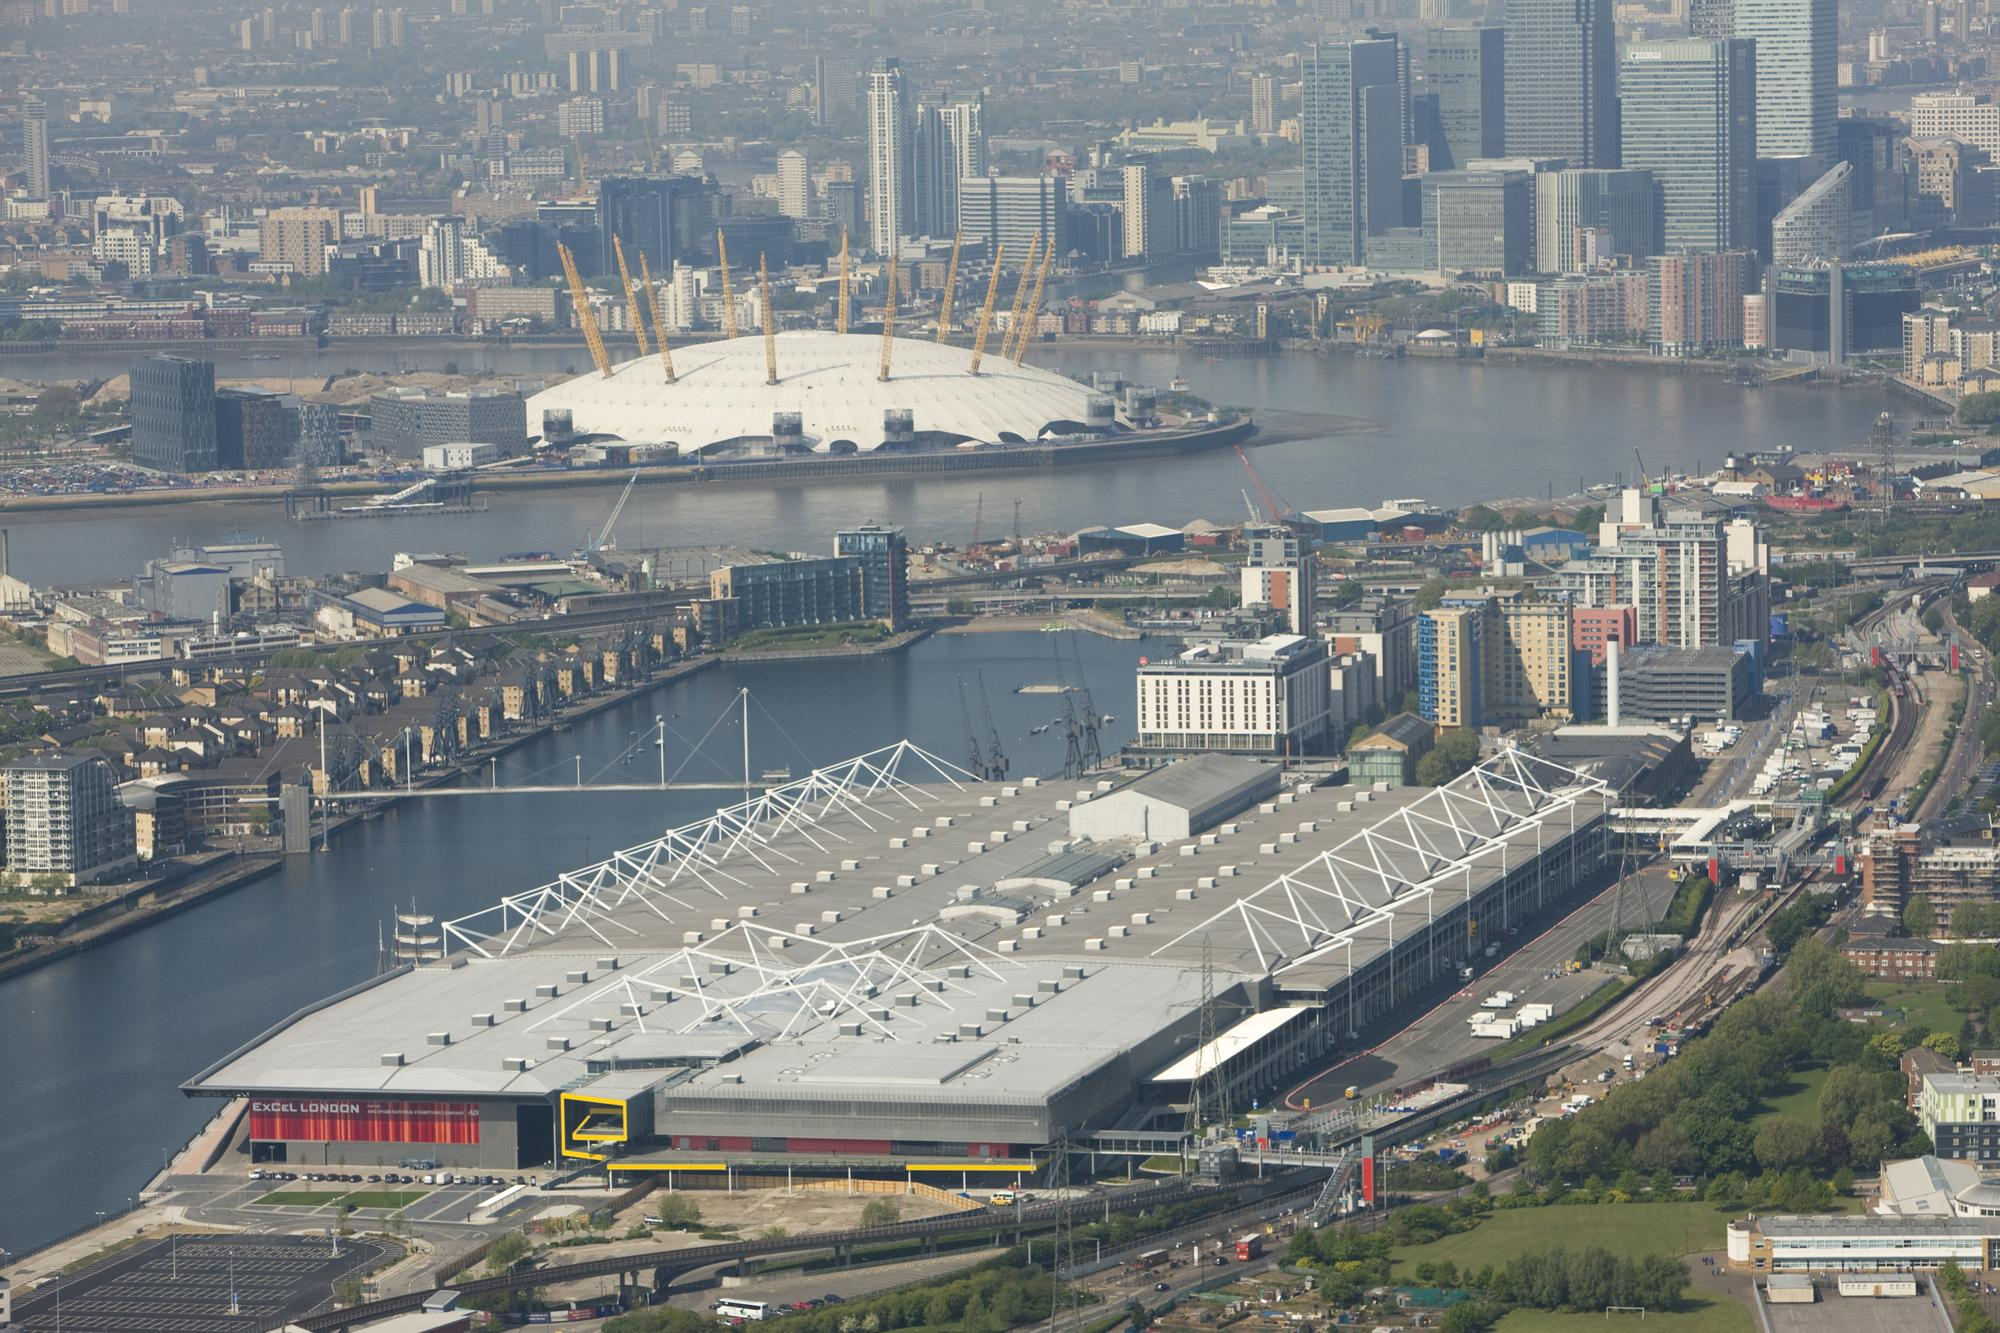 ExCel Centre London - When god was dishing out convention centres, he bestowed a pretty huge one on London!